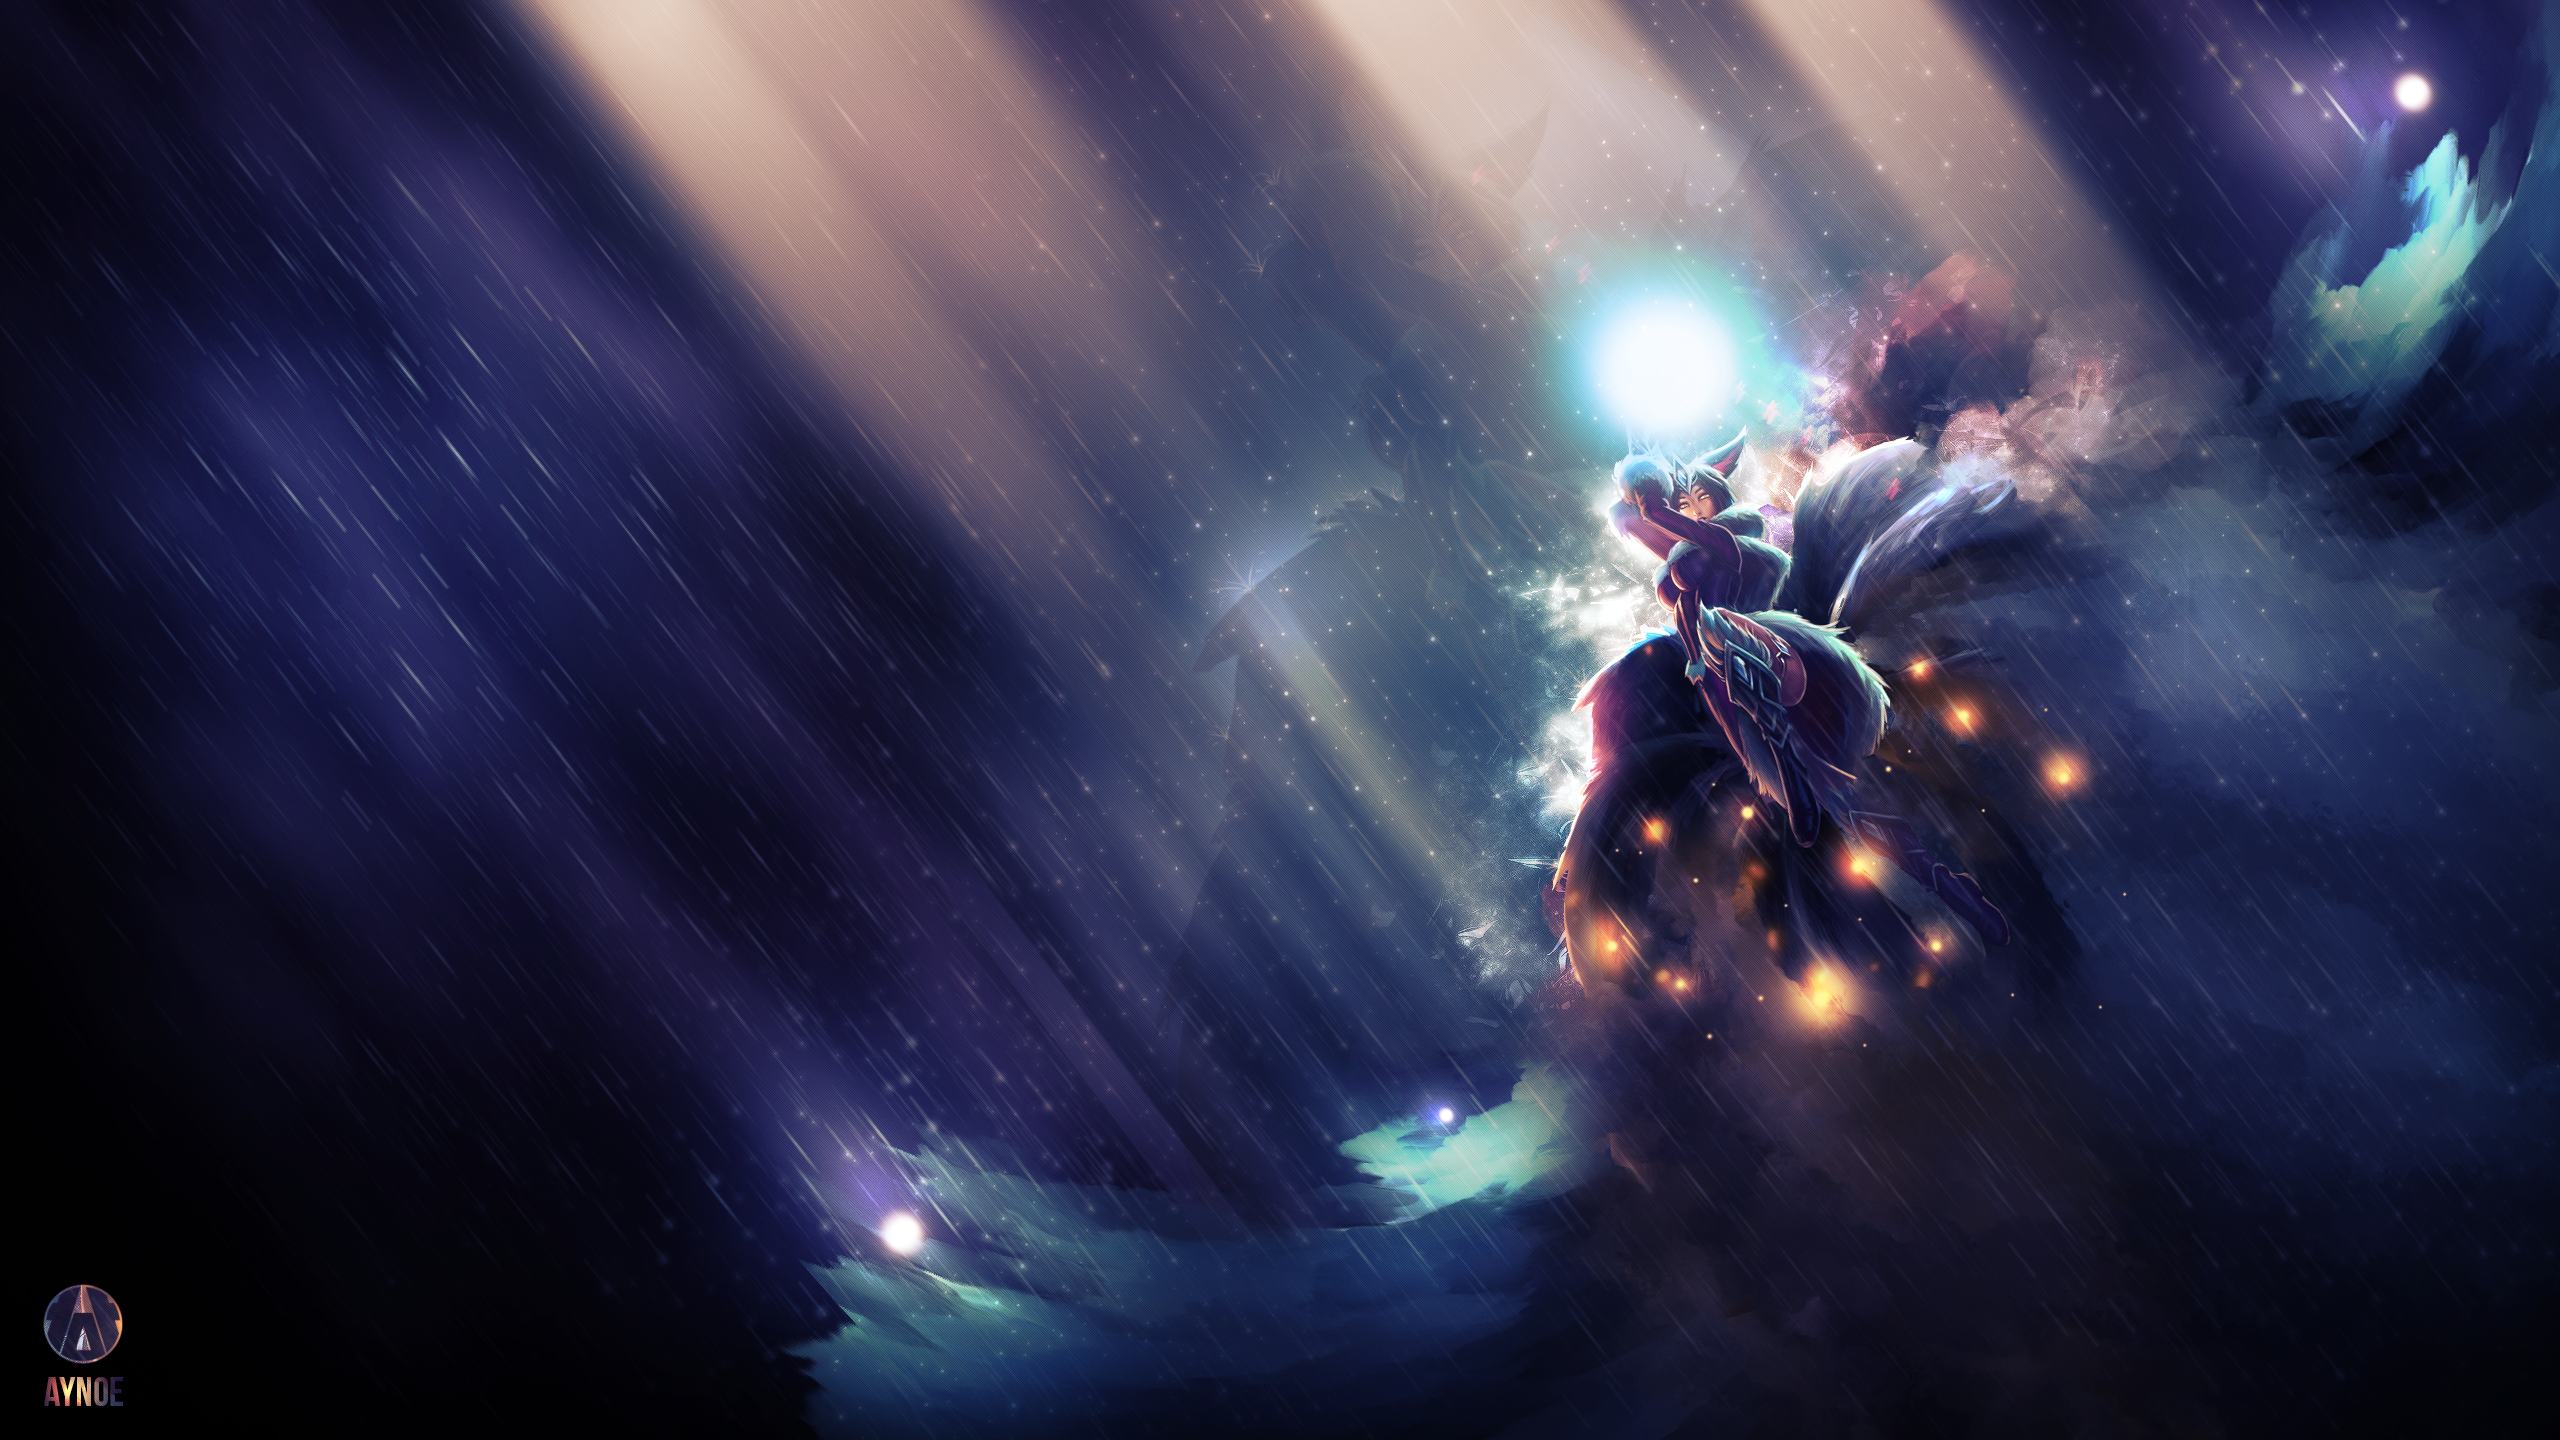 Anime Ahri League of Legends Wallpaper by Kairuichan on DeviantArt